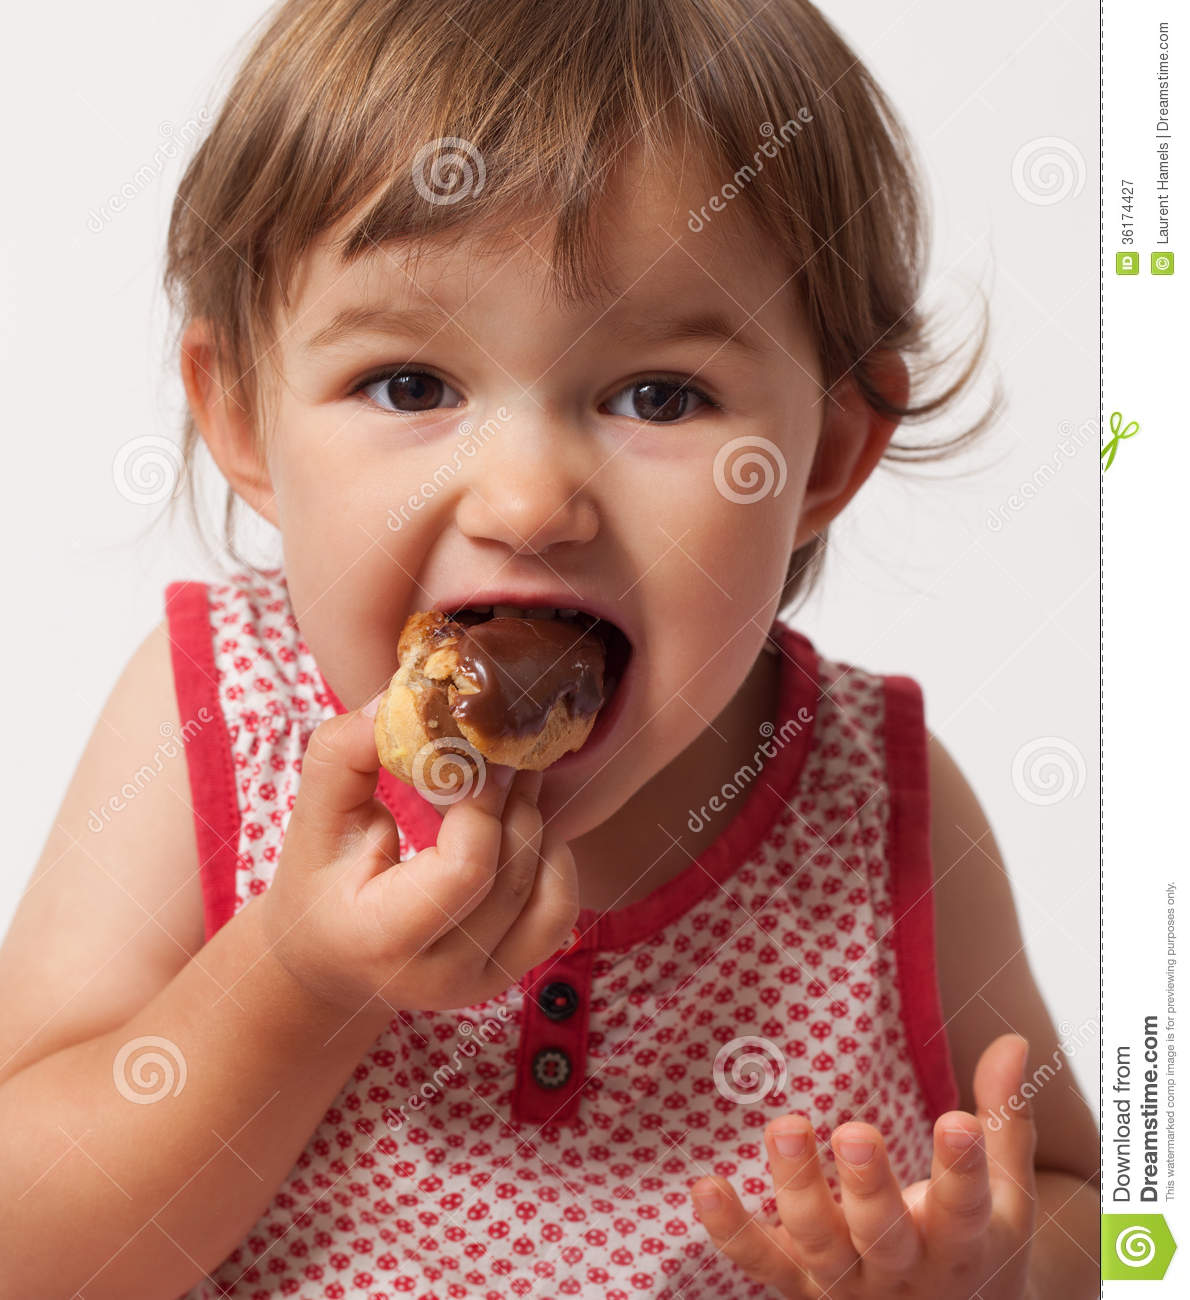 Child Gluttony For Chocolate Food Royalty Free Stock